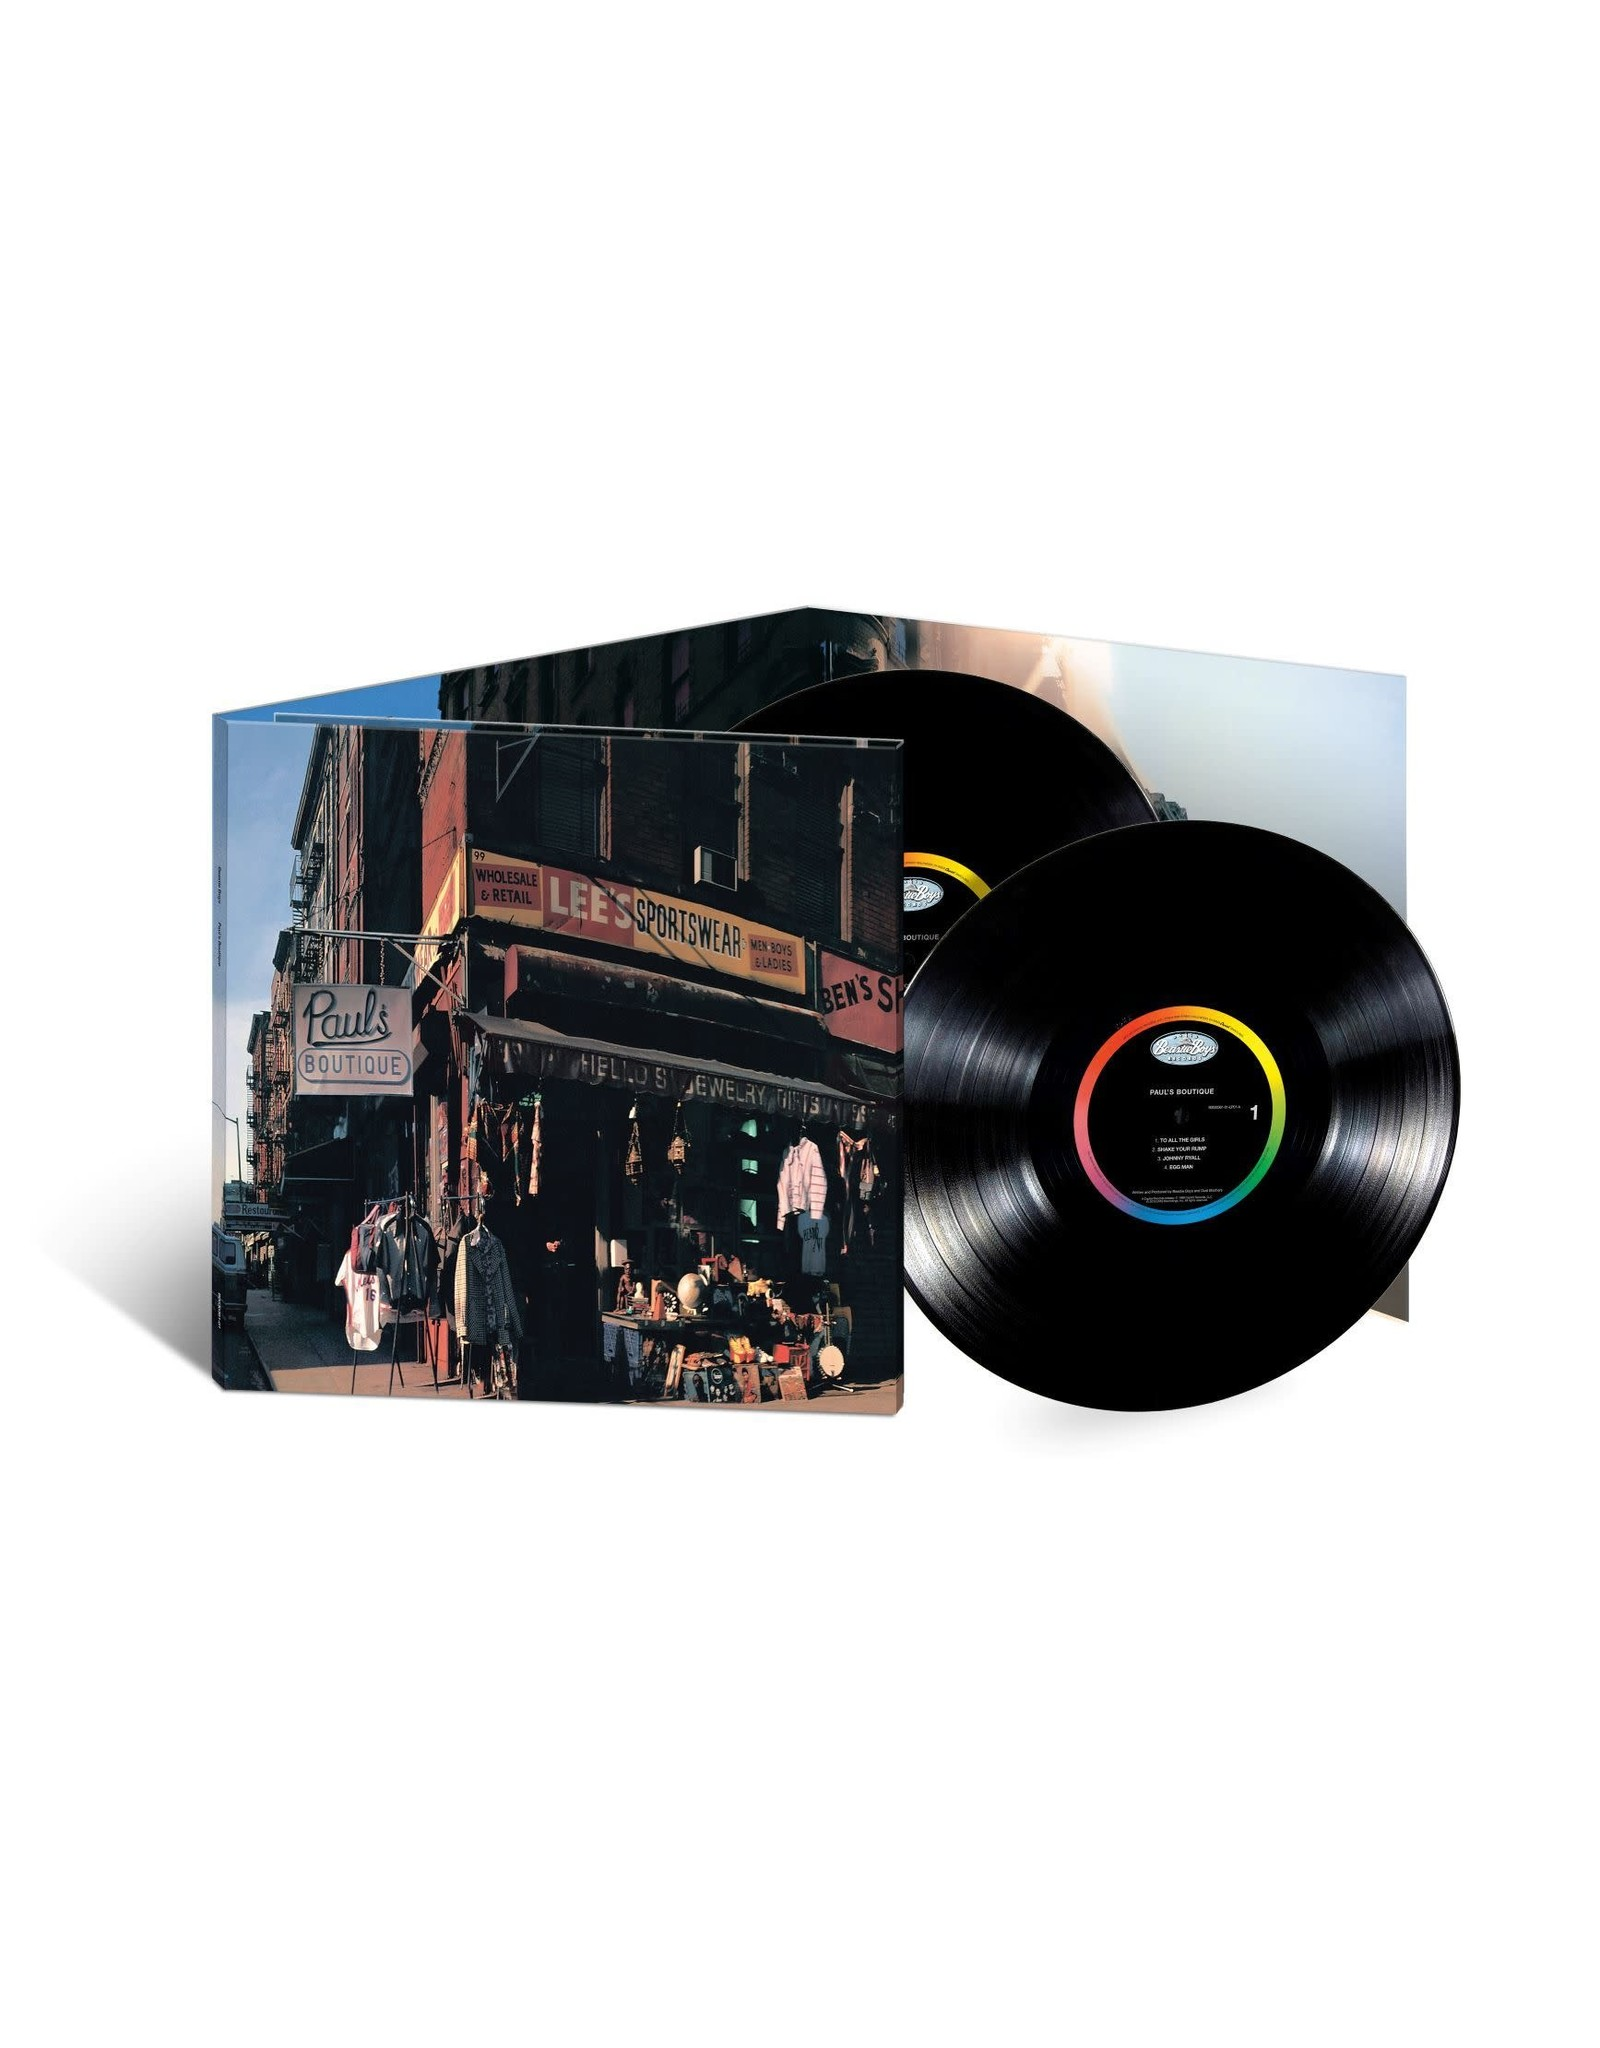 Beastie Boys - Paul's Boutique (30th Anniversary)